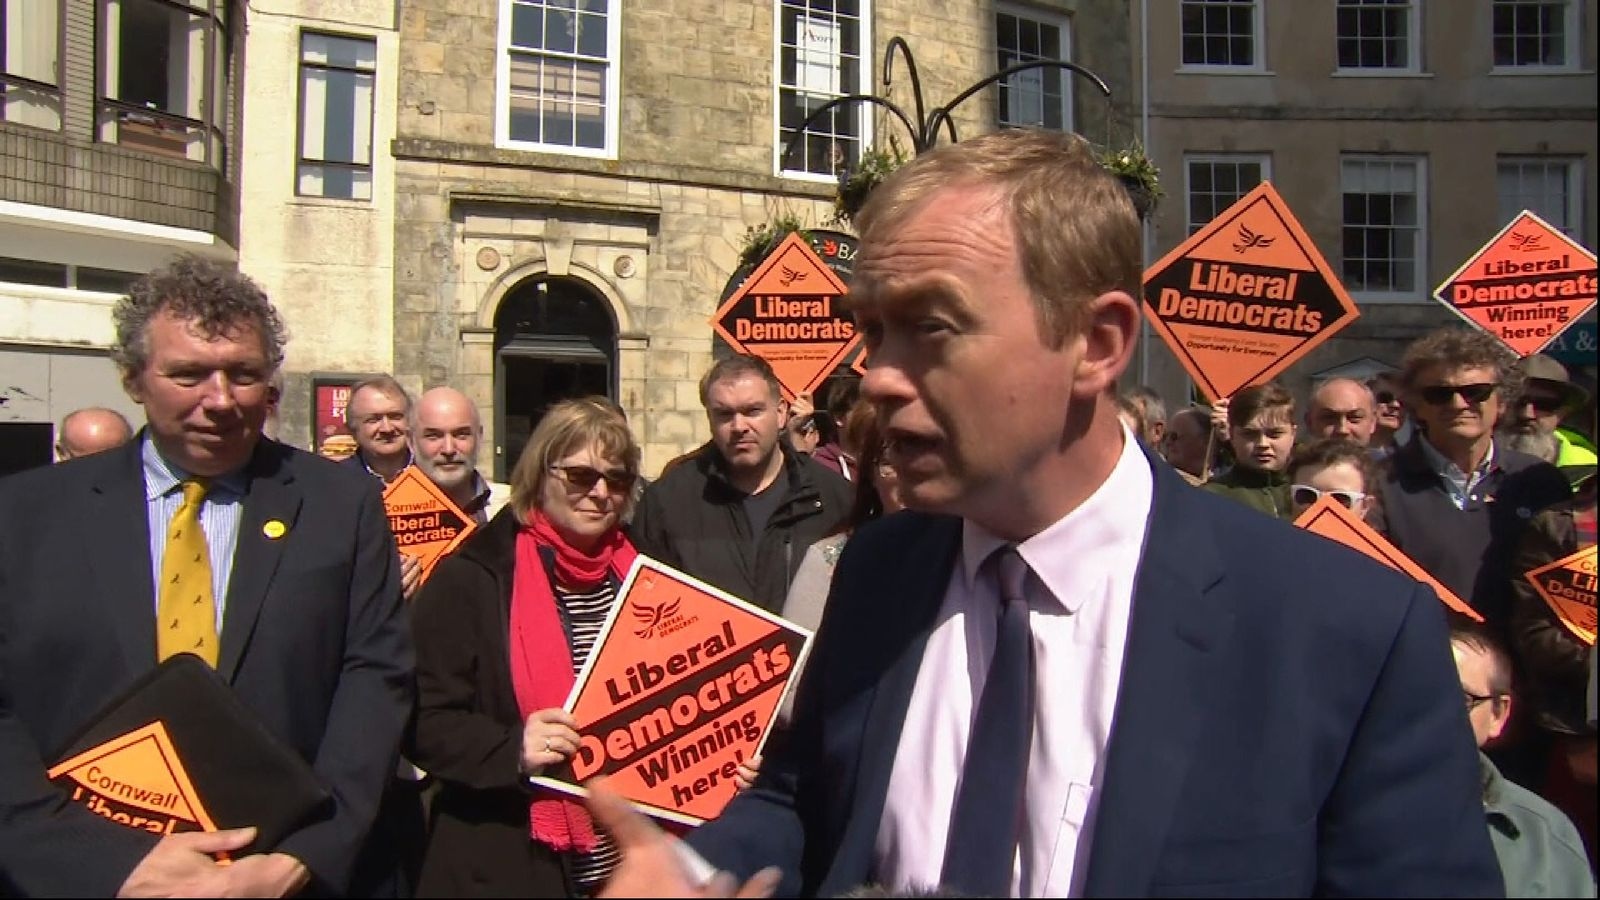 Lib Dem leader Tim Farron at campaign event.